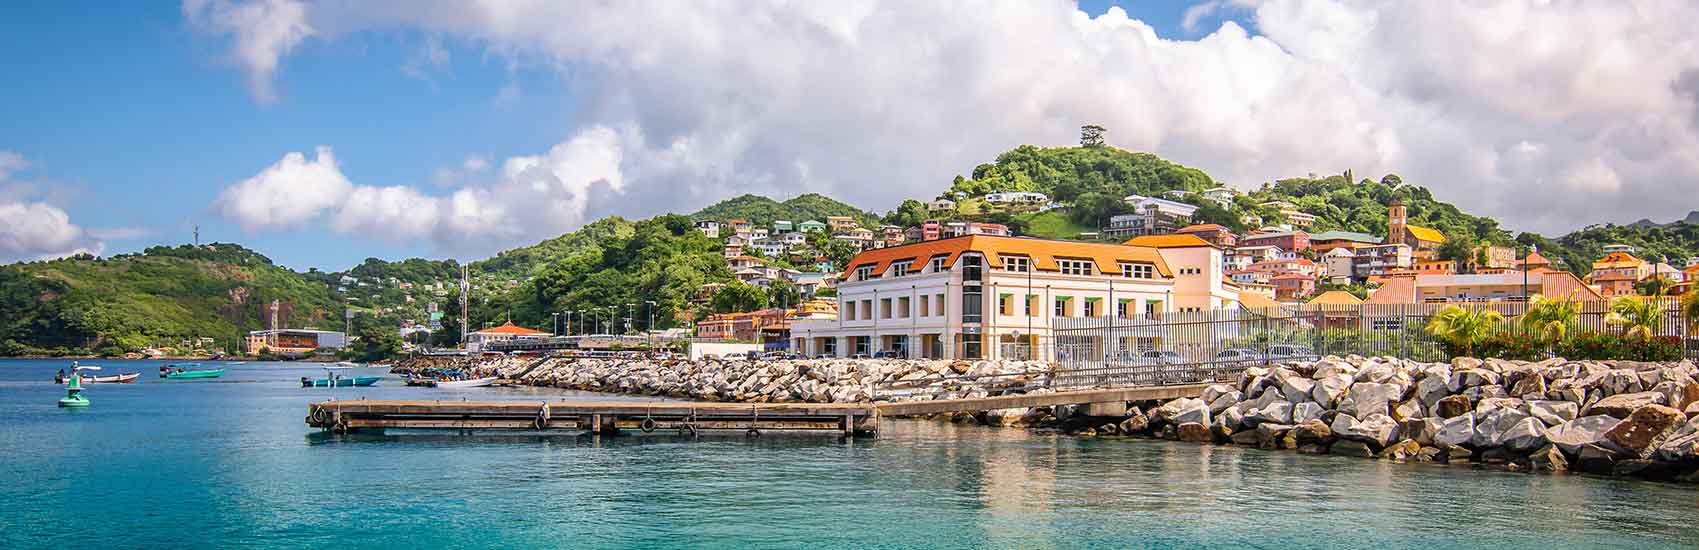 Set Sail to the Caribbean with Seabourn 0